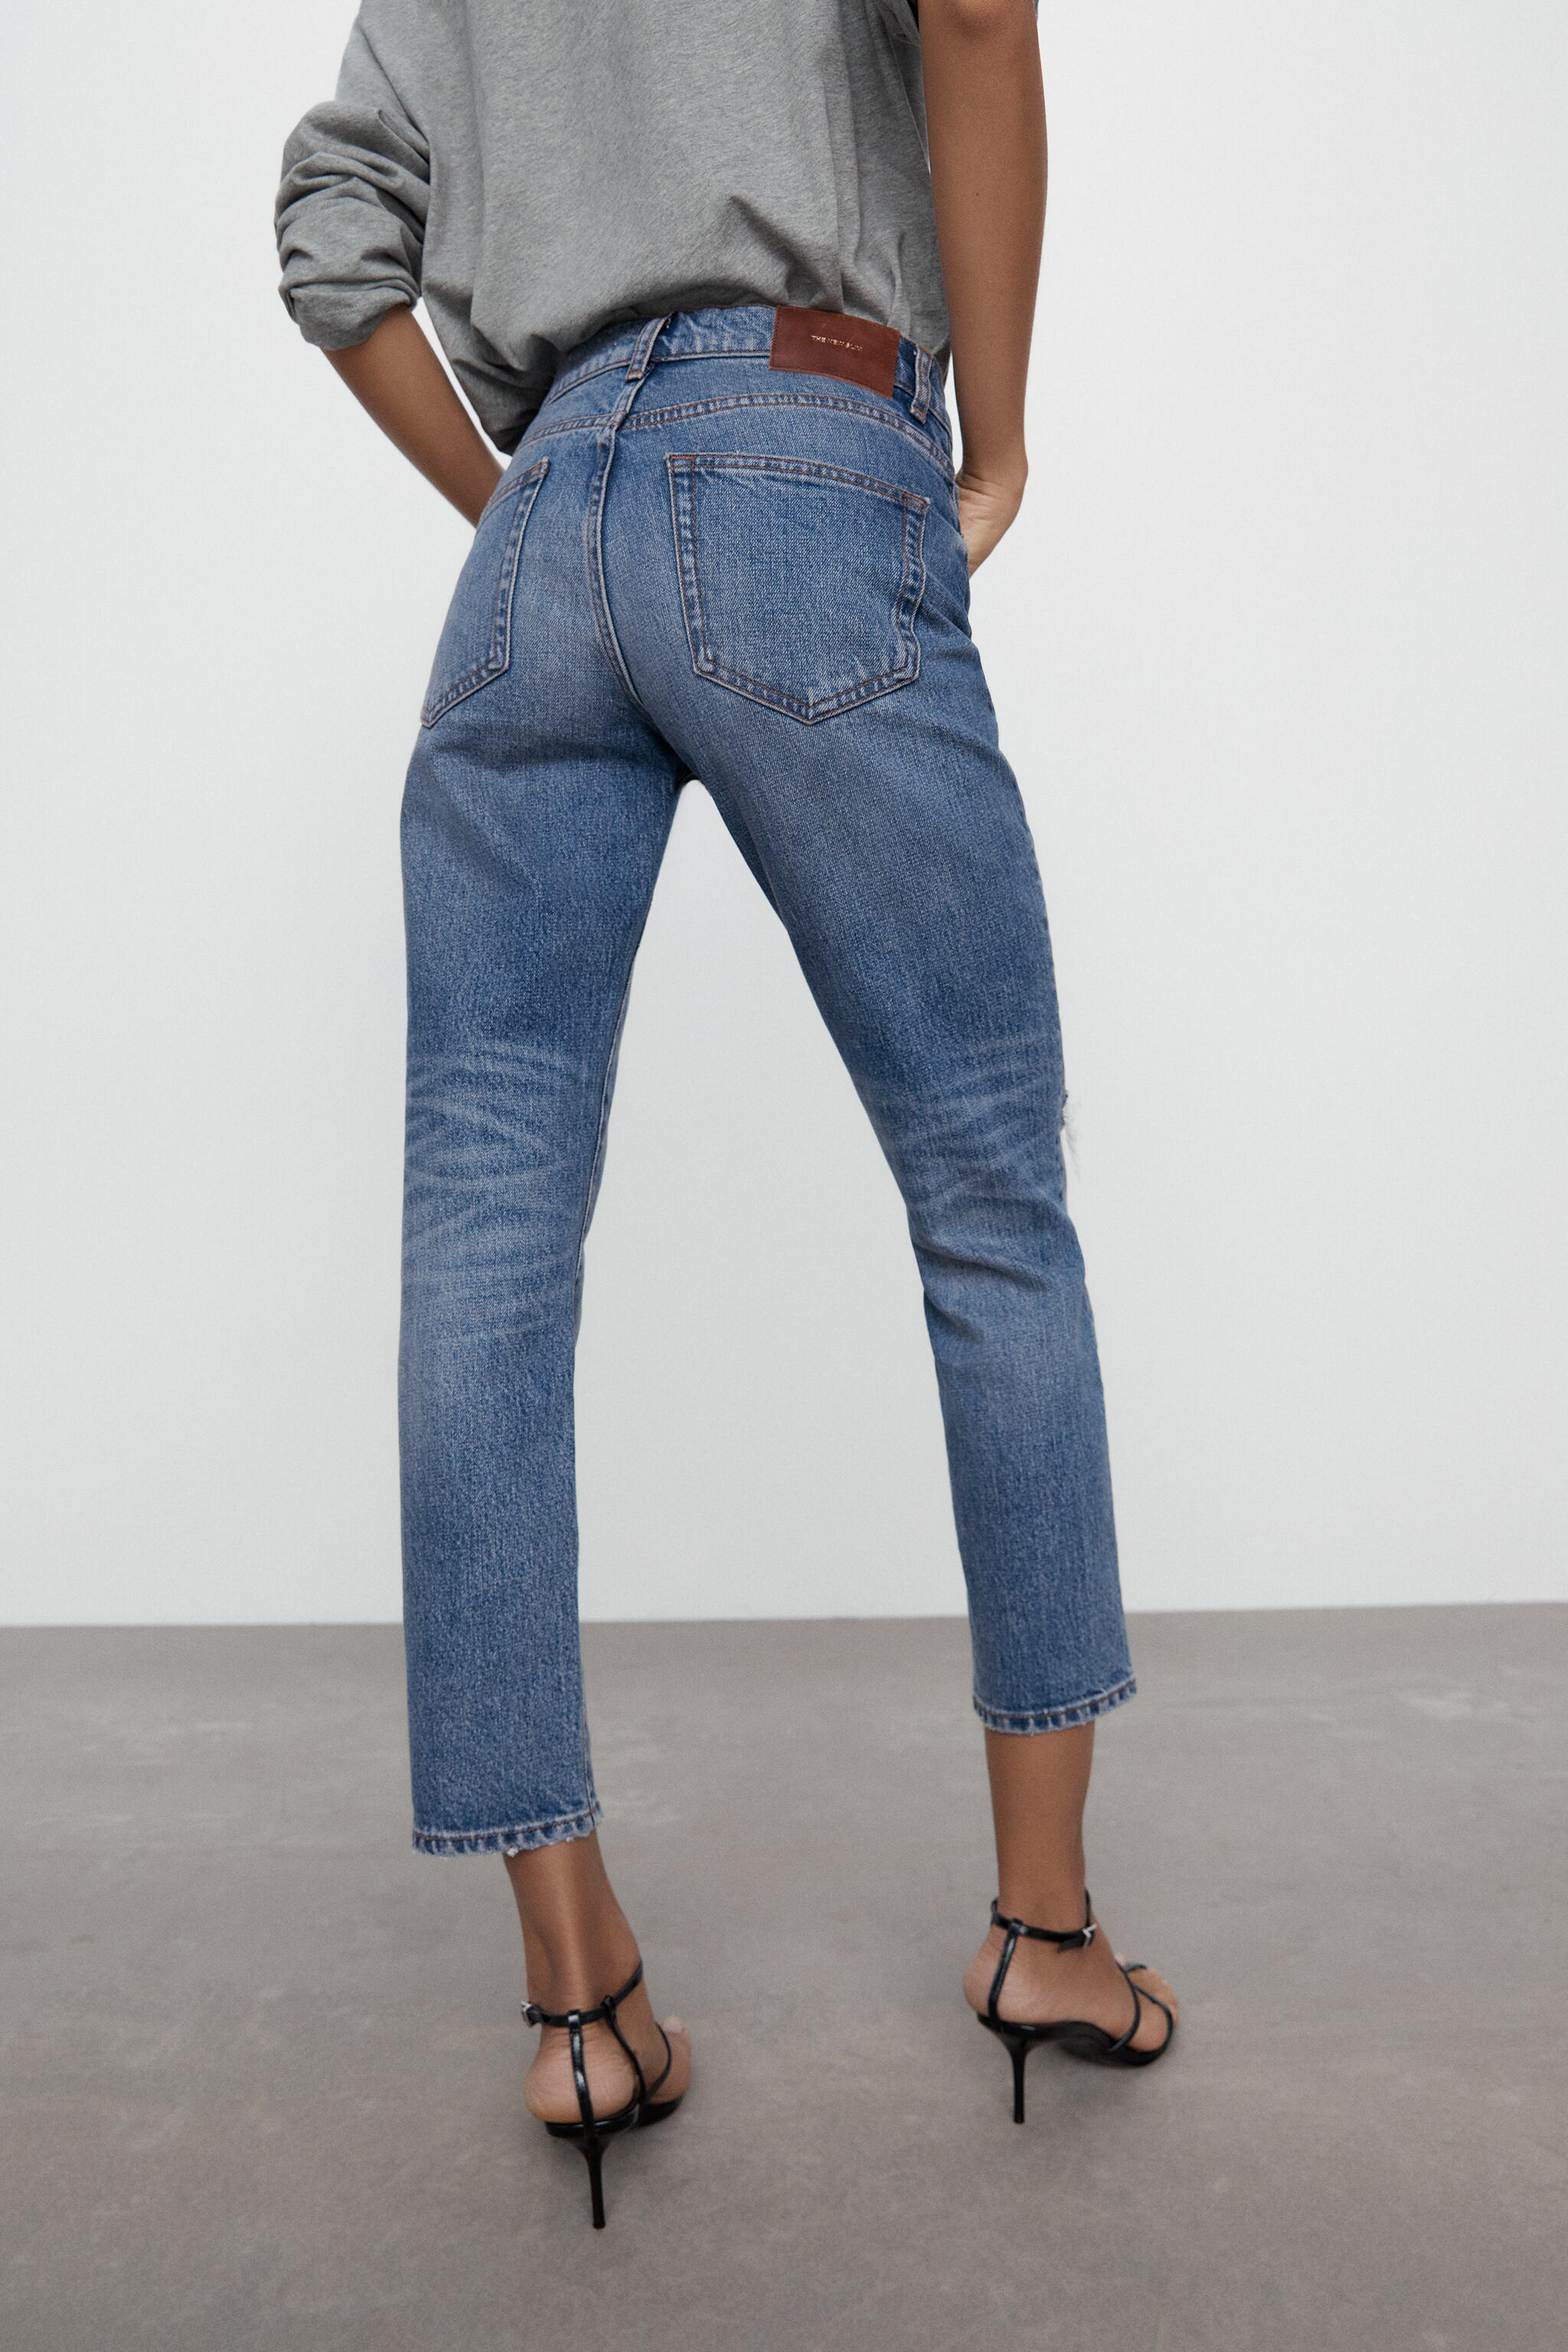 ZW THE NEW SLIM CROPPED JEANS 6